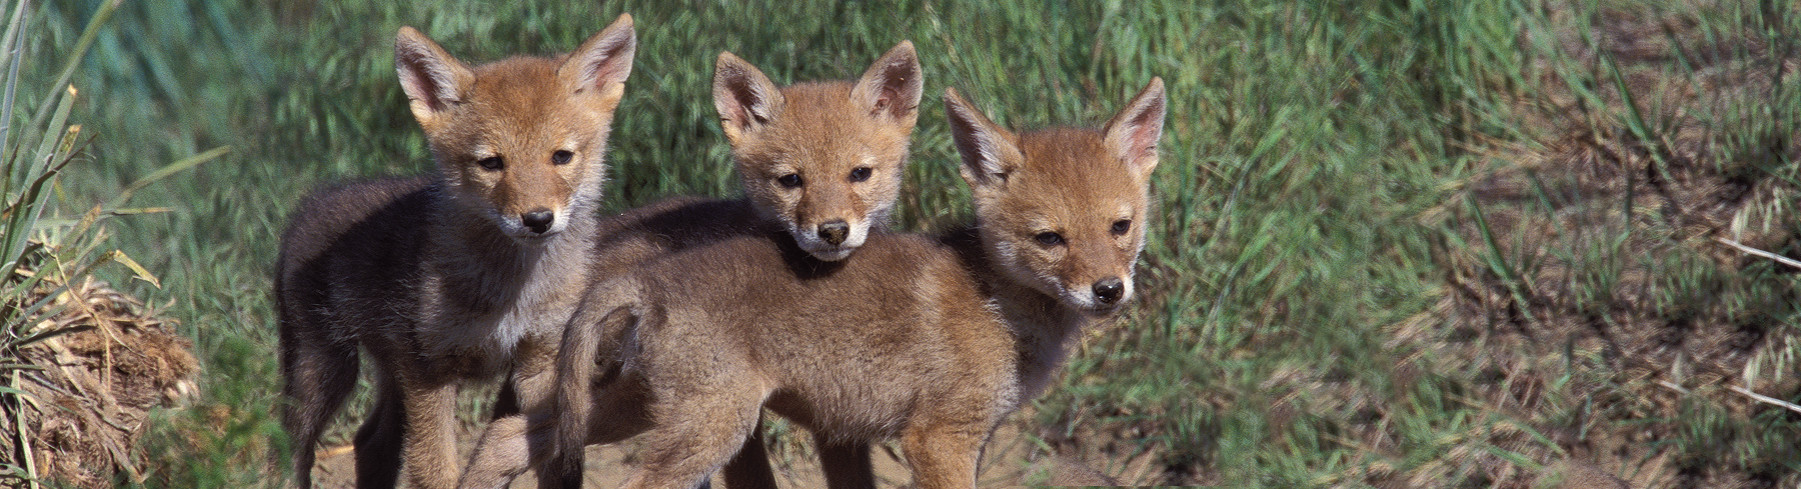 Coyote pups Lee Kline